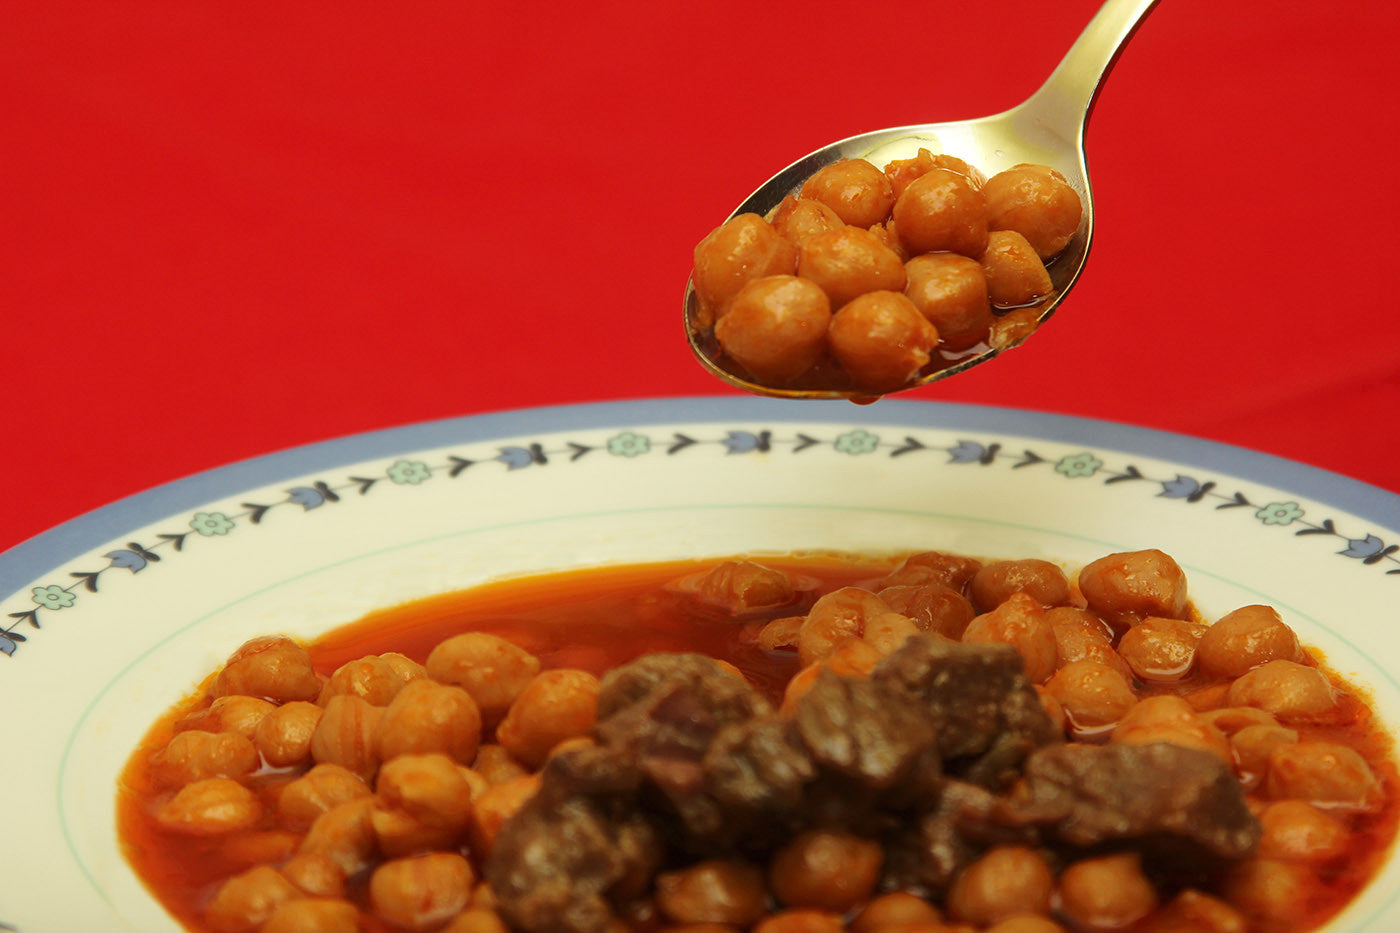 Clay Lamb Garbanzo Bean Stew for Couples